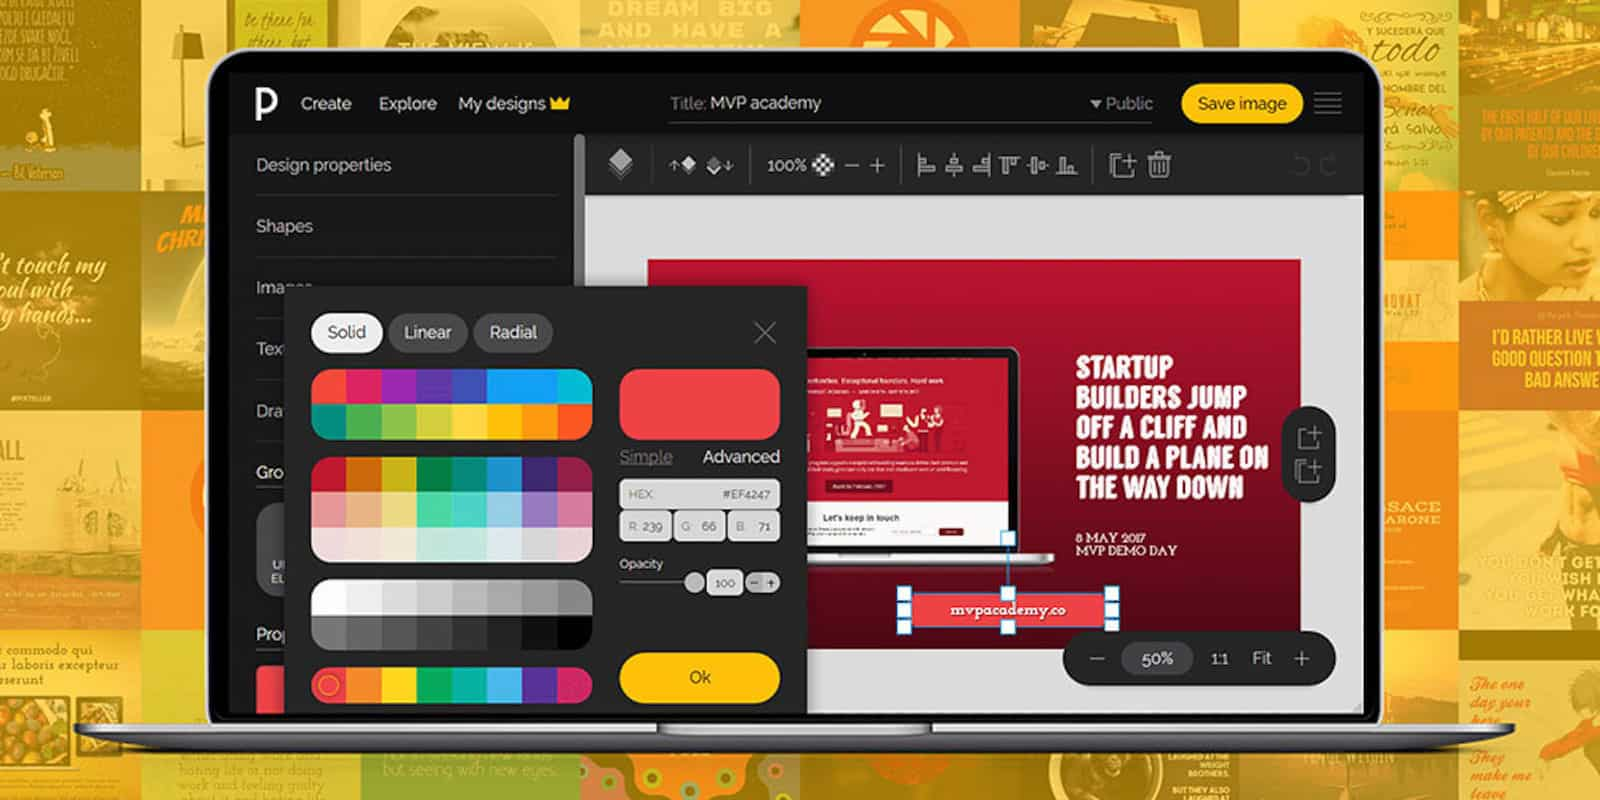 No graphic design skills? No problem. This web based app makes graphic design accessible to anyone.